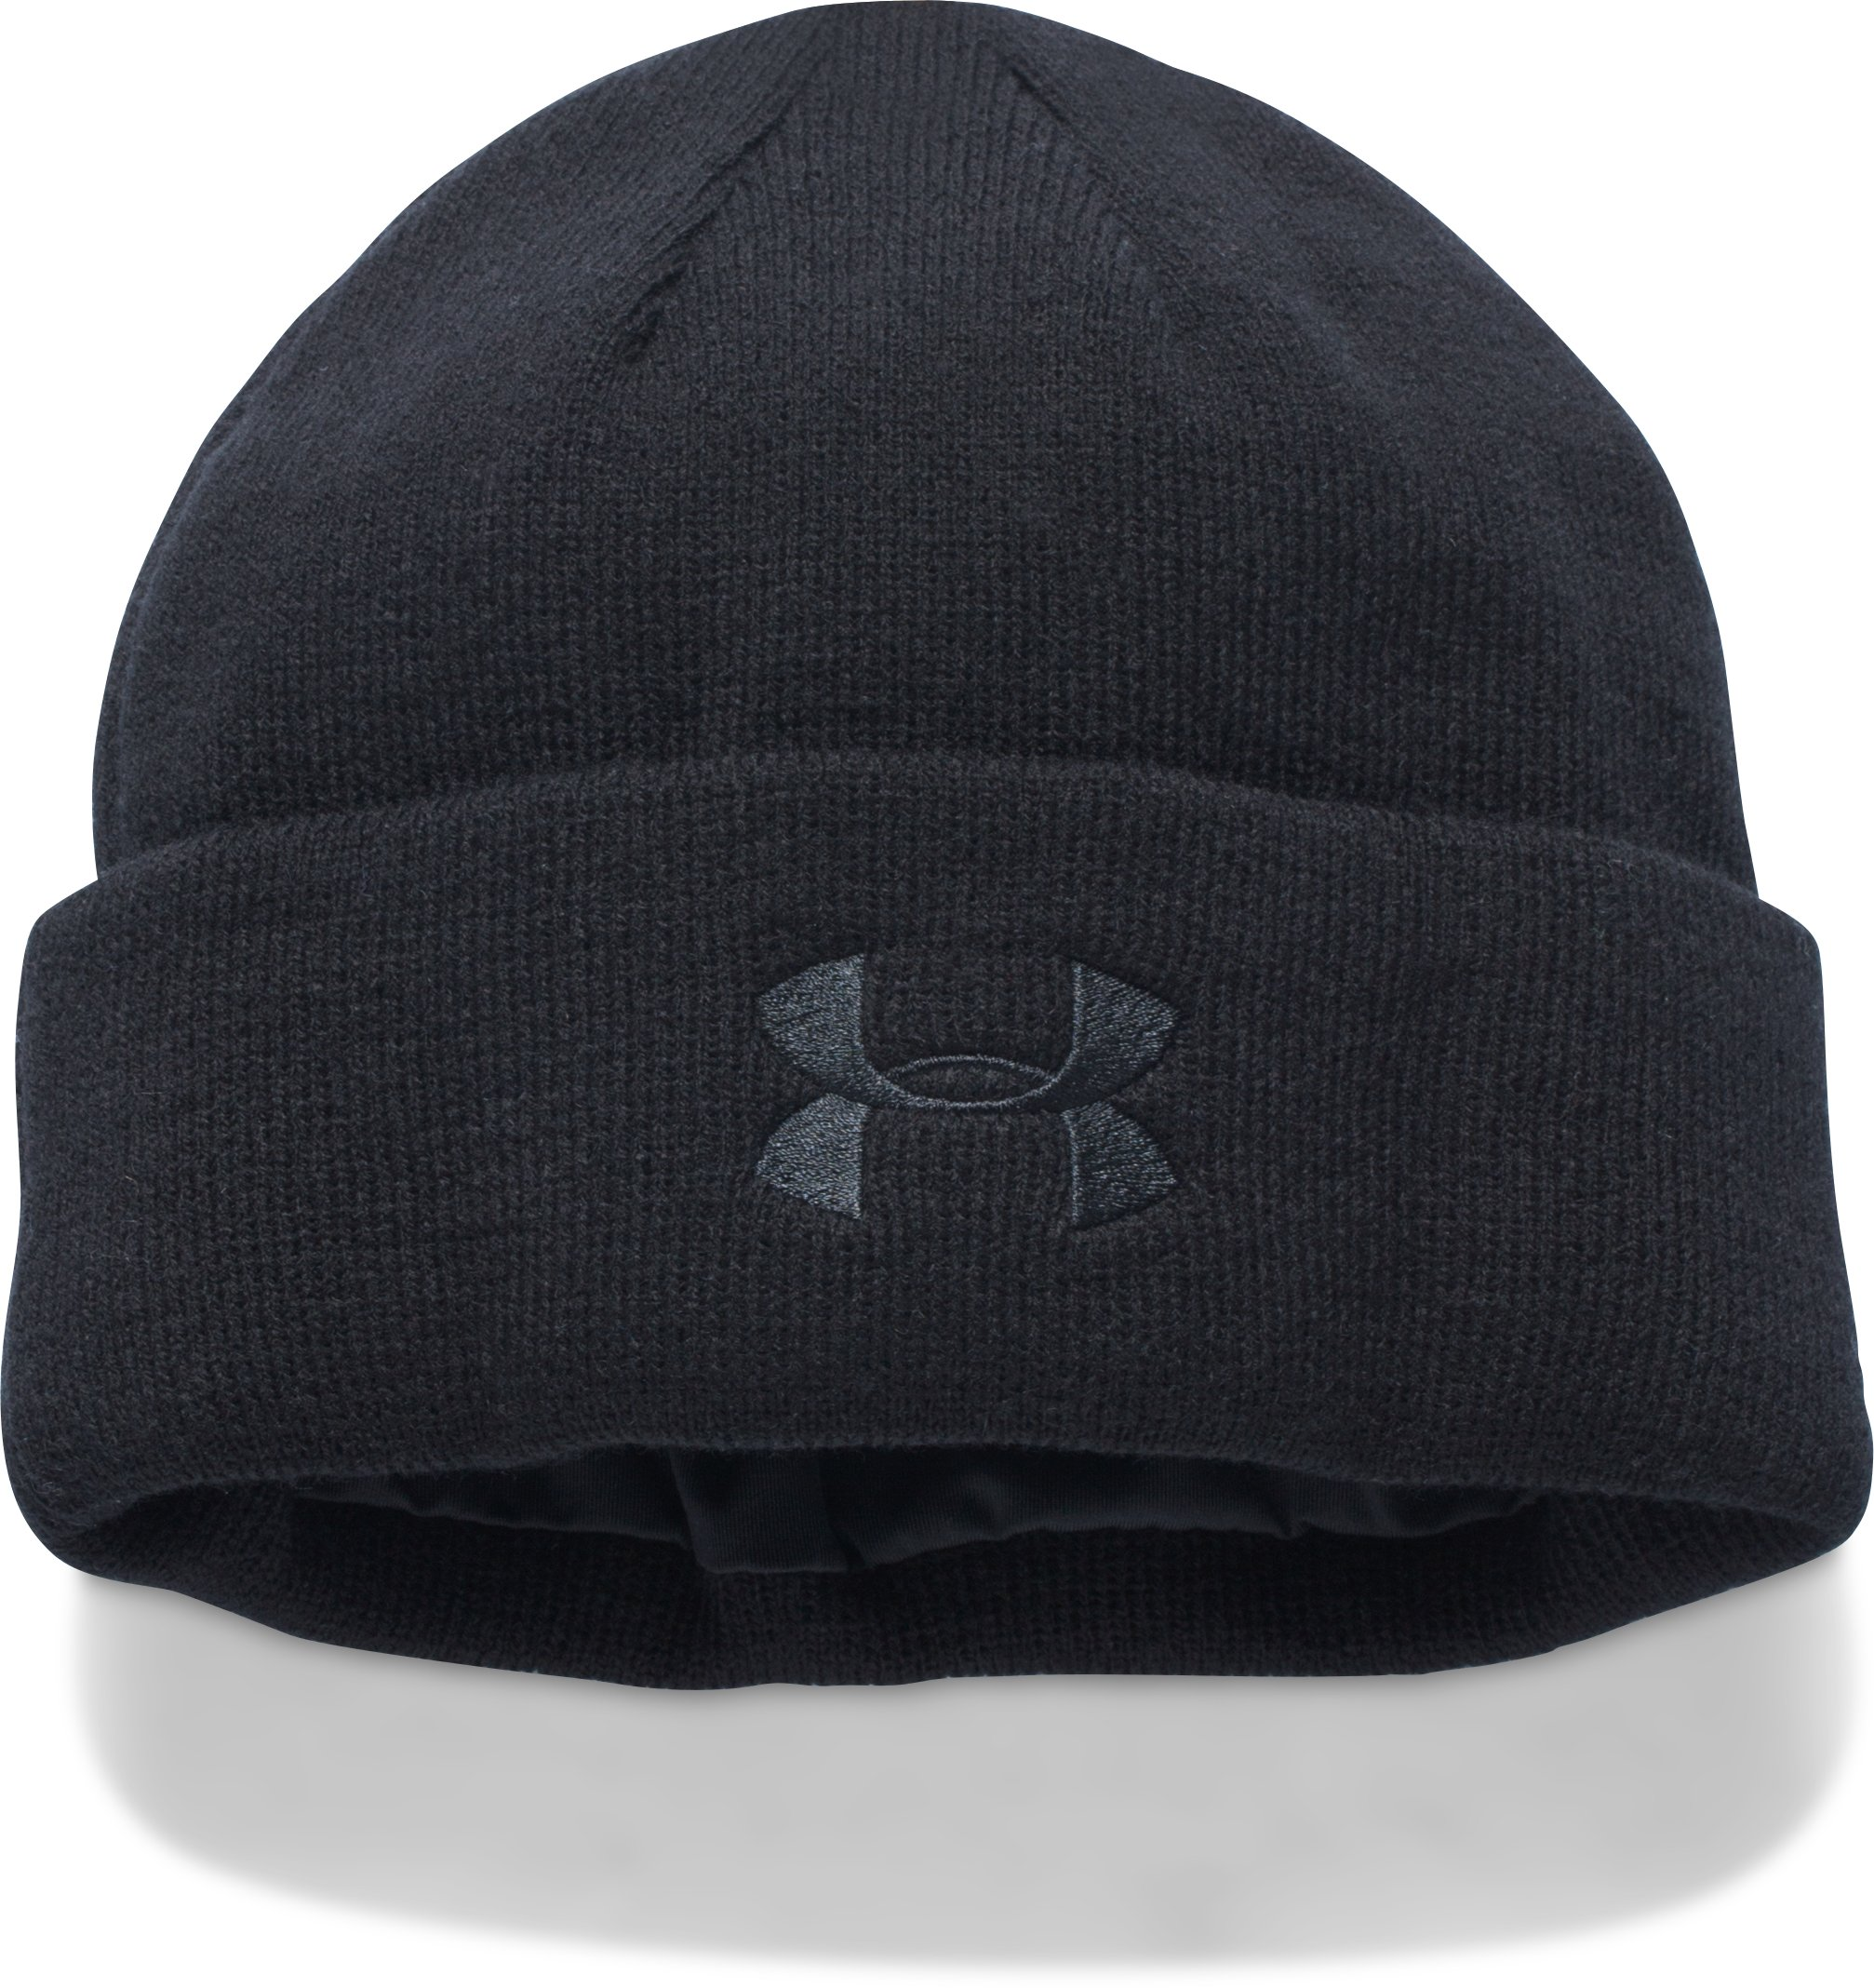 Men's Tactical Stealth Beanie 2 Colors $24.99